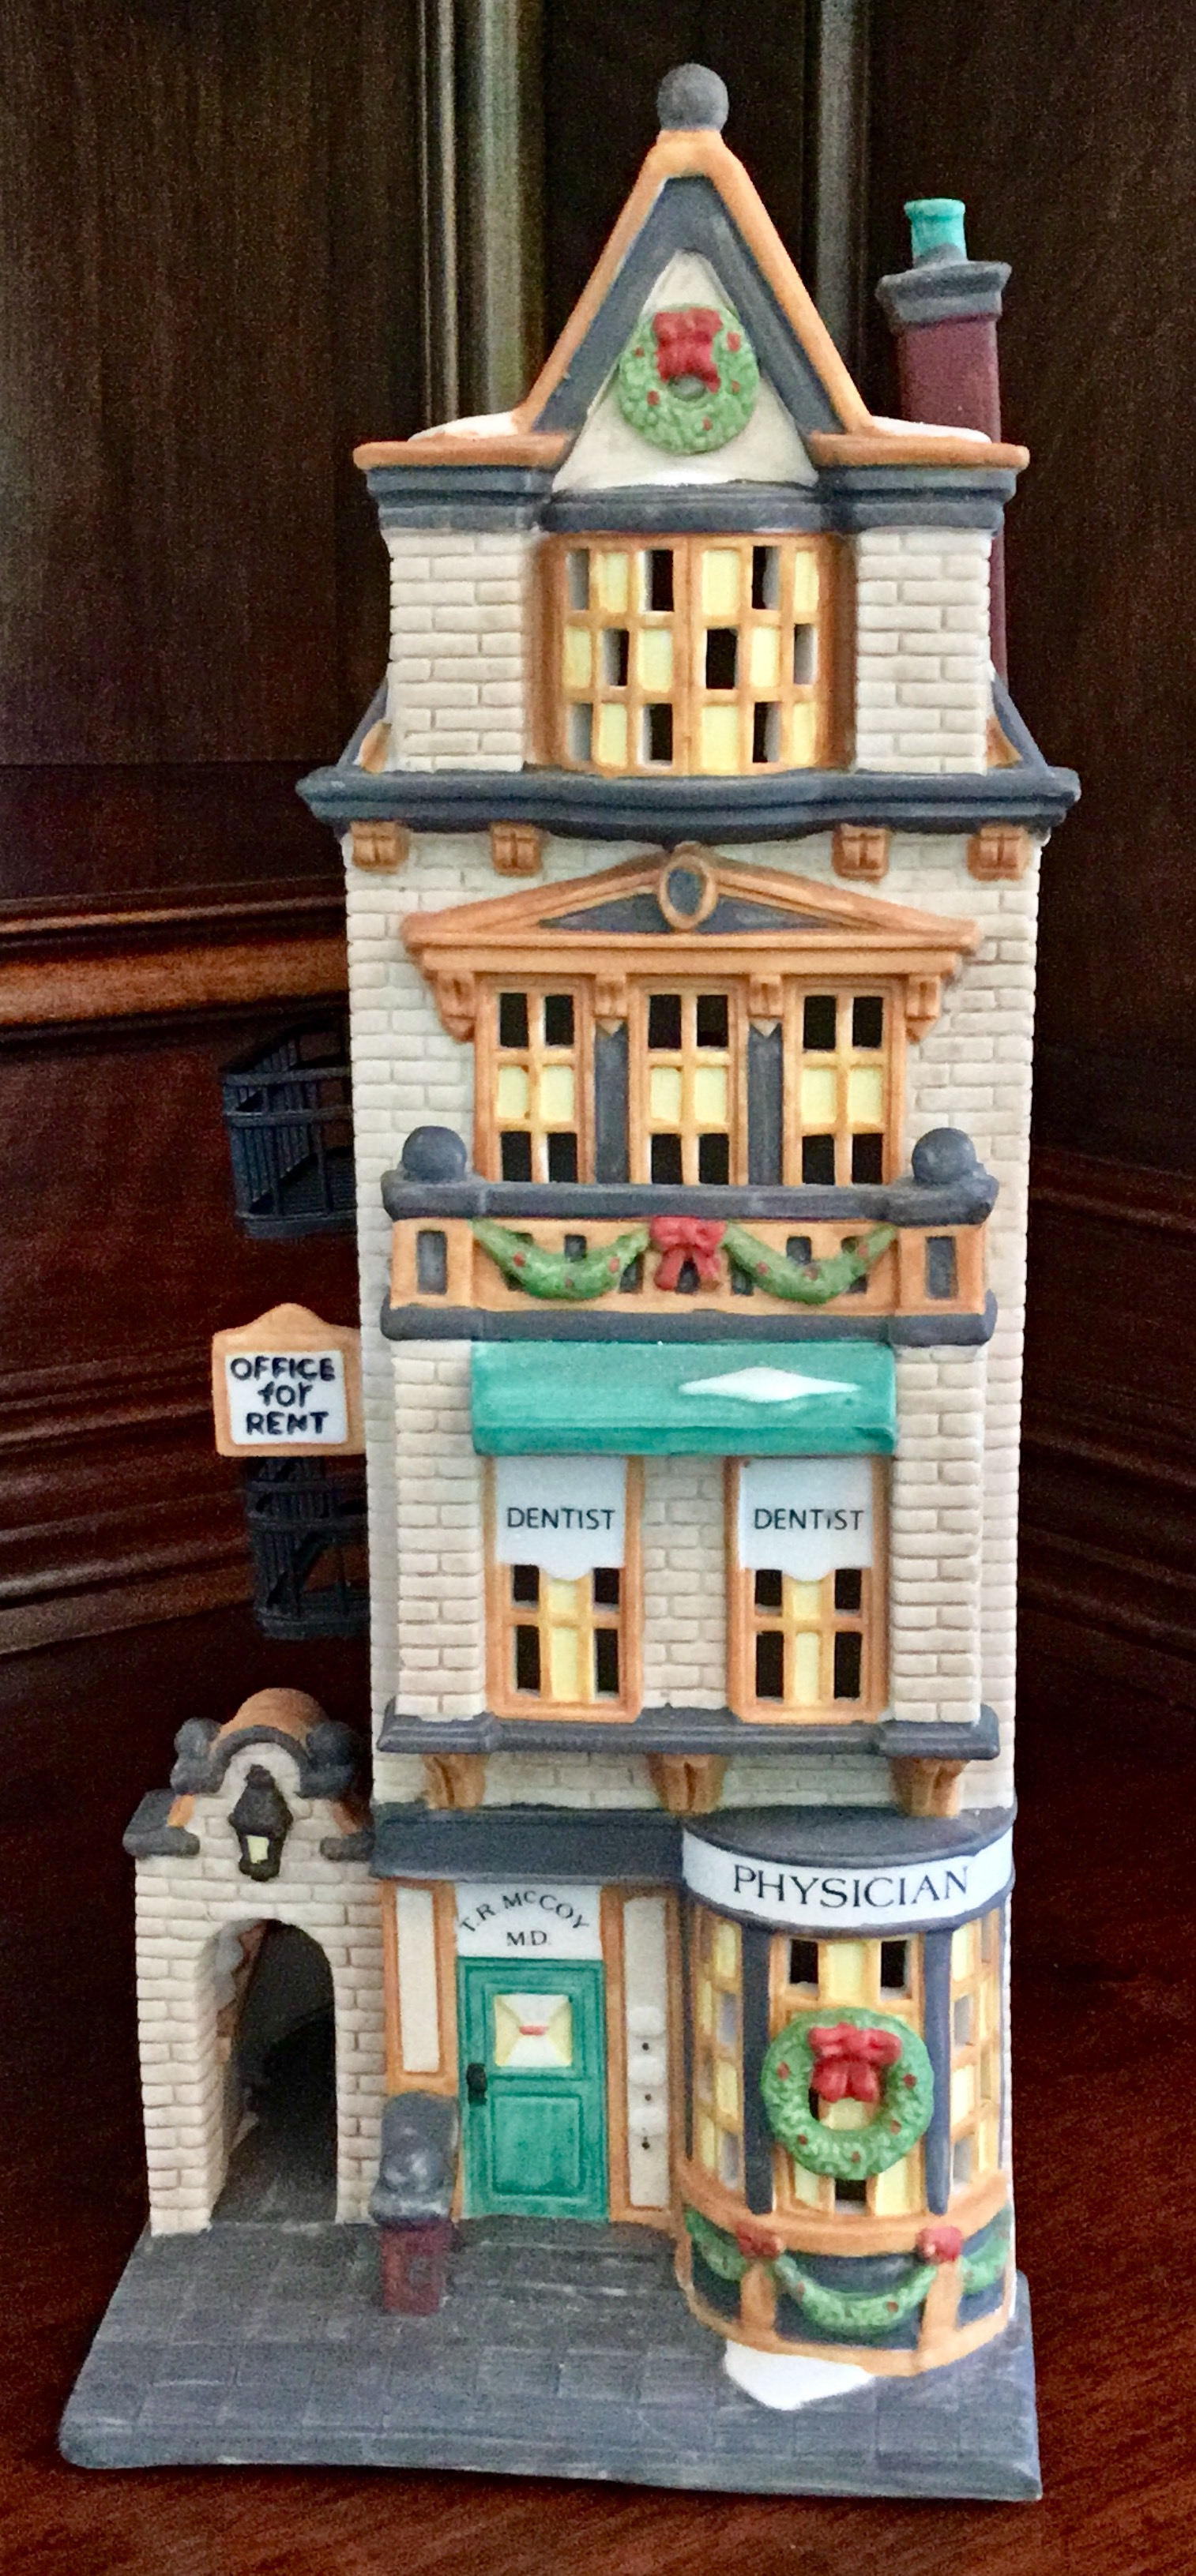 Department 56 Christmas in the City Series, The Doctor's Office